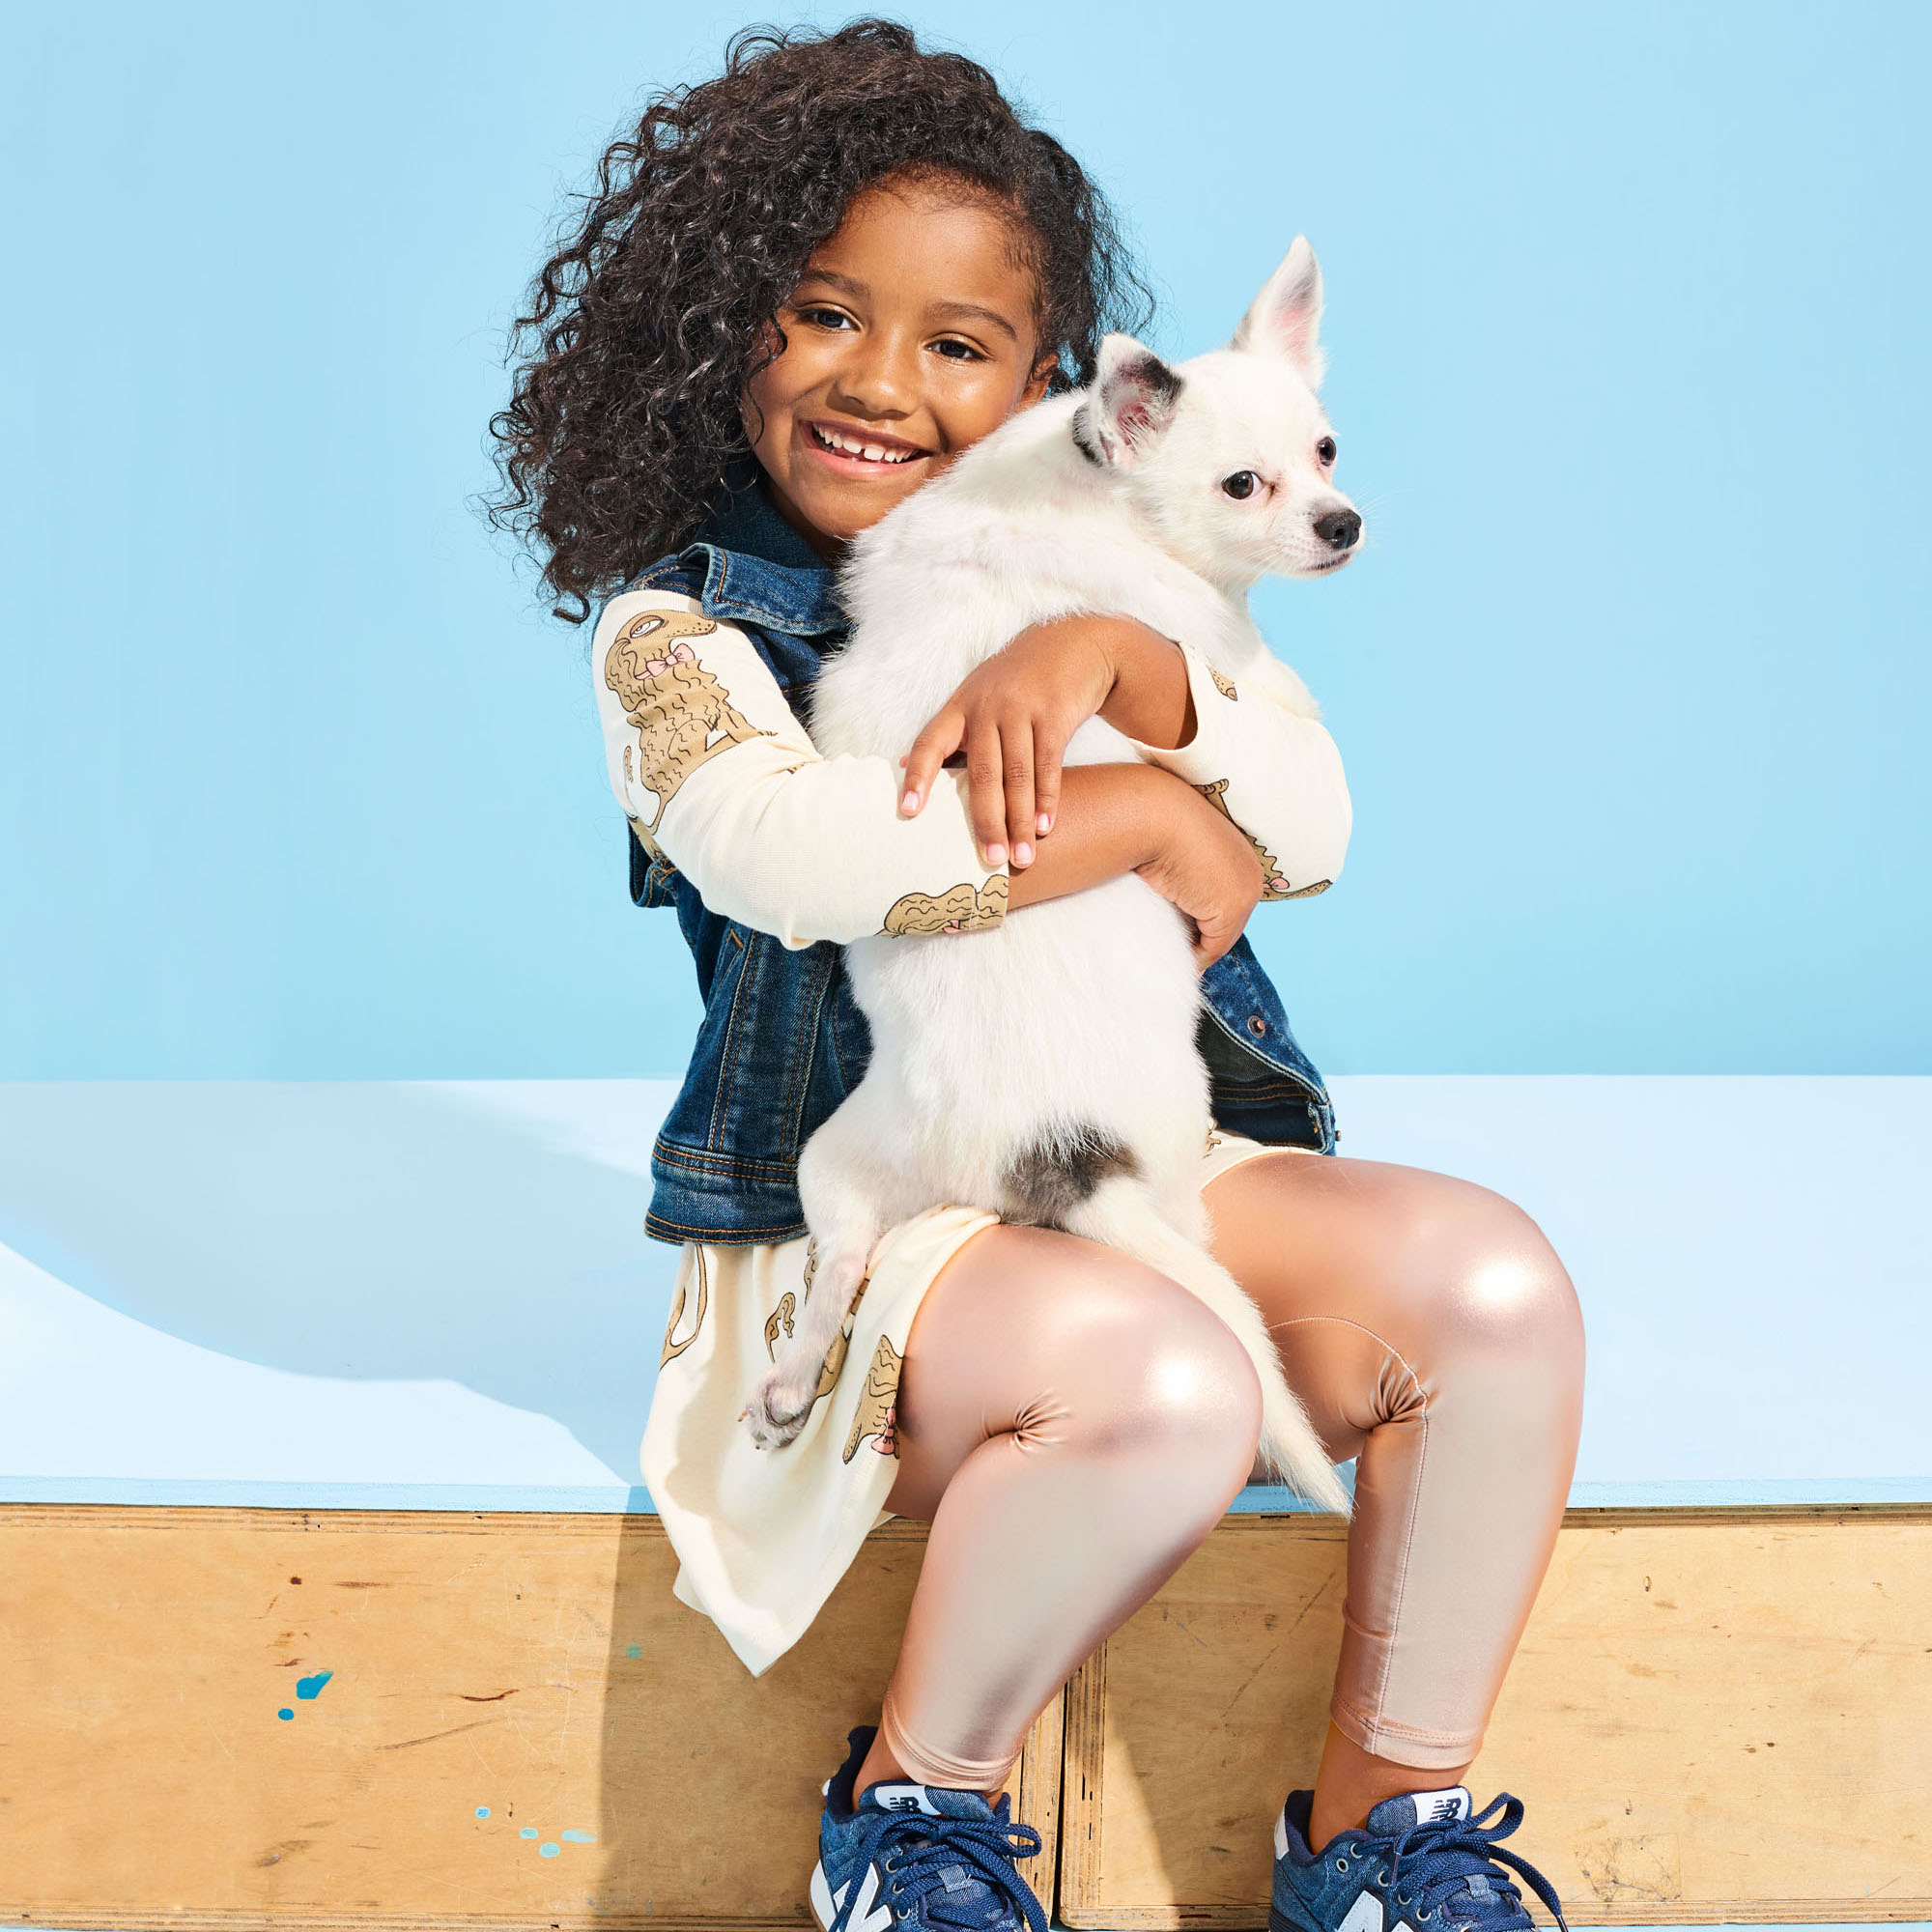 girl with curly hair sitting and holding white chihuahua